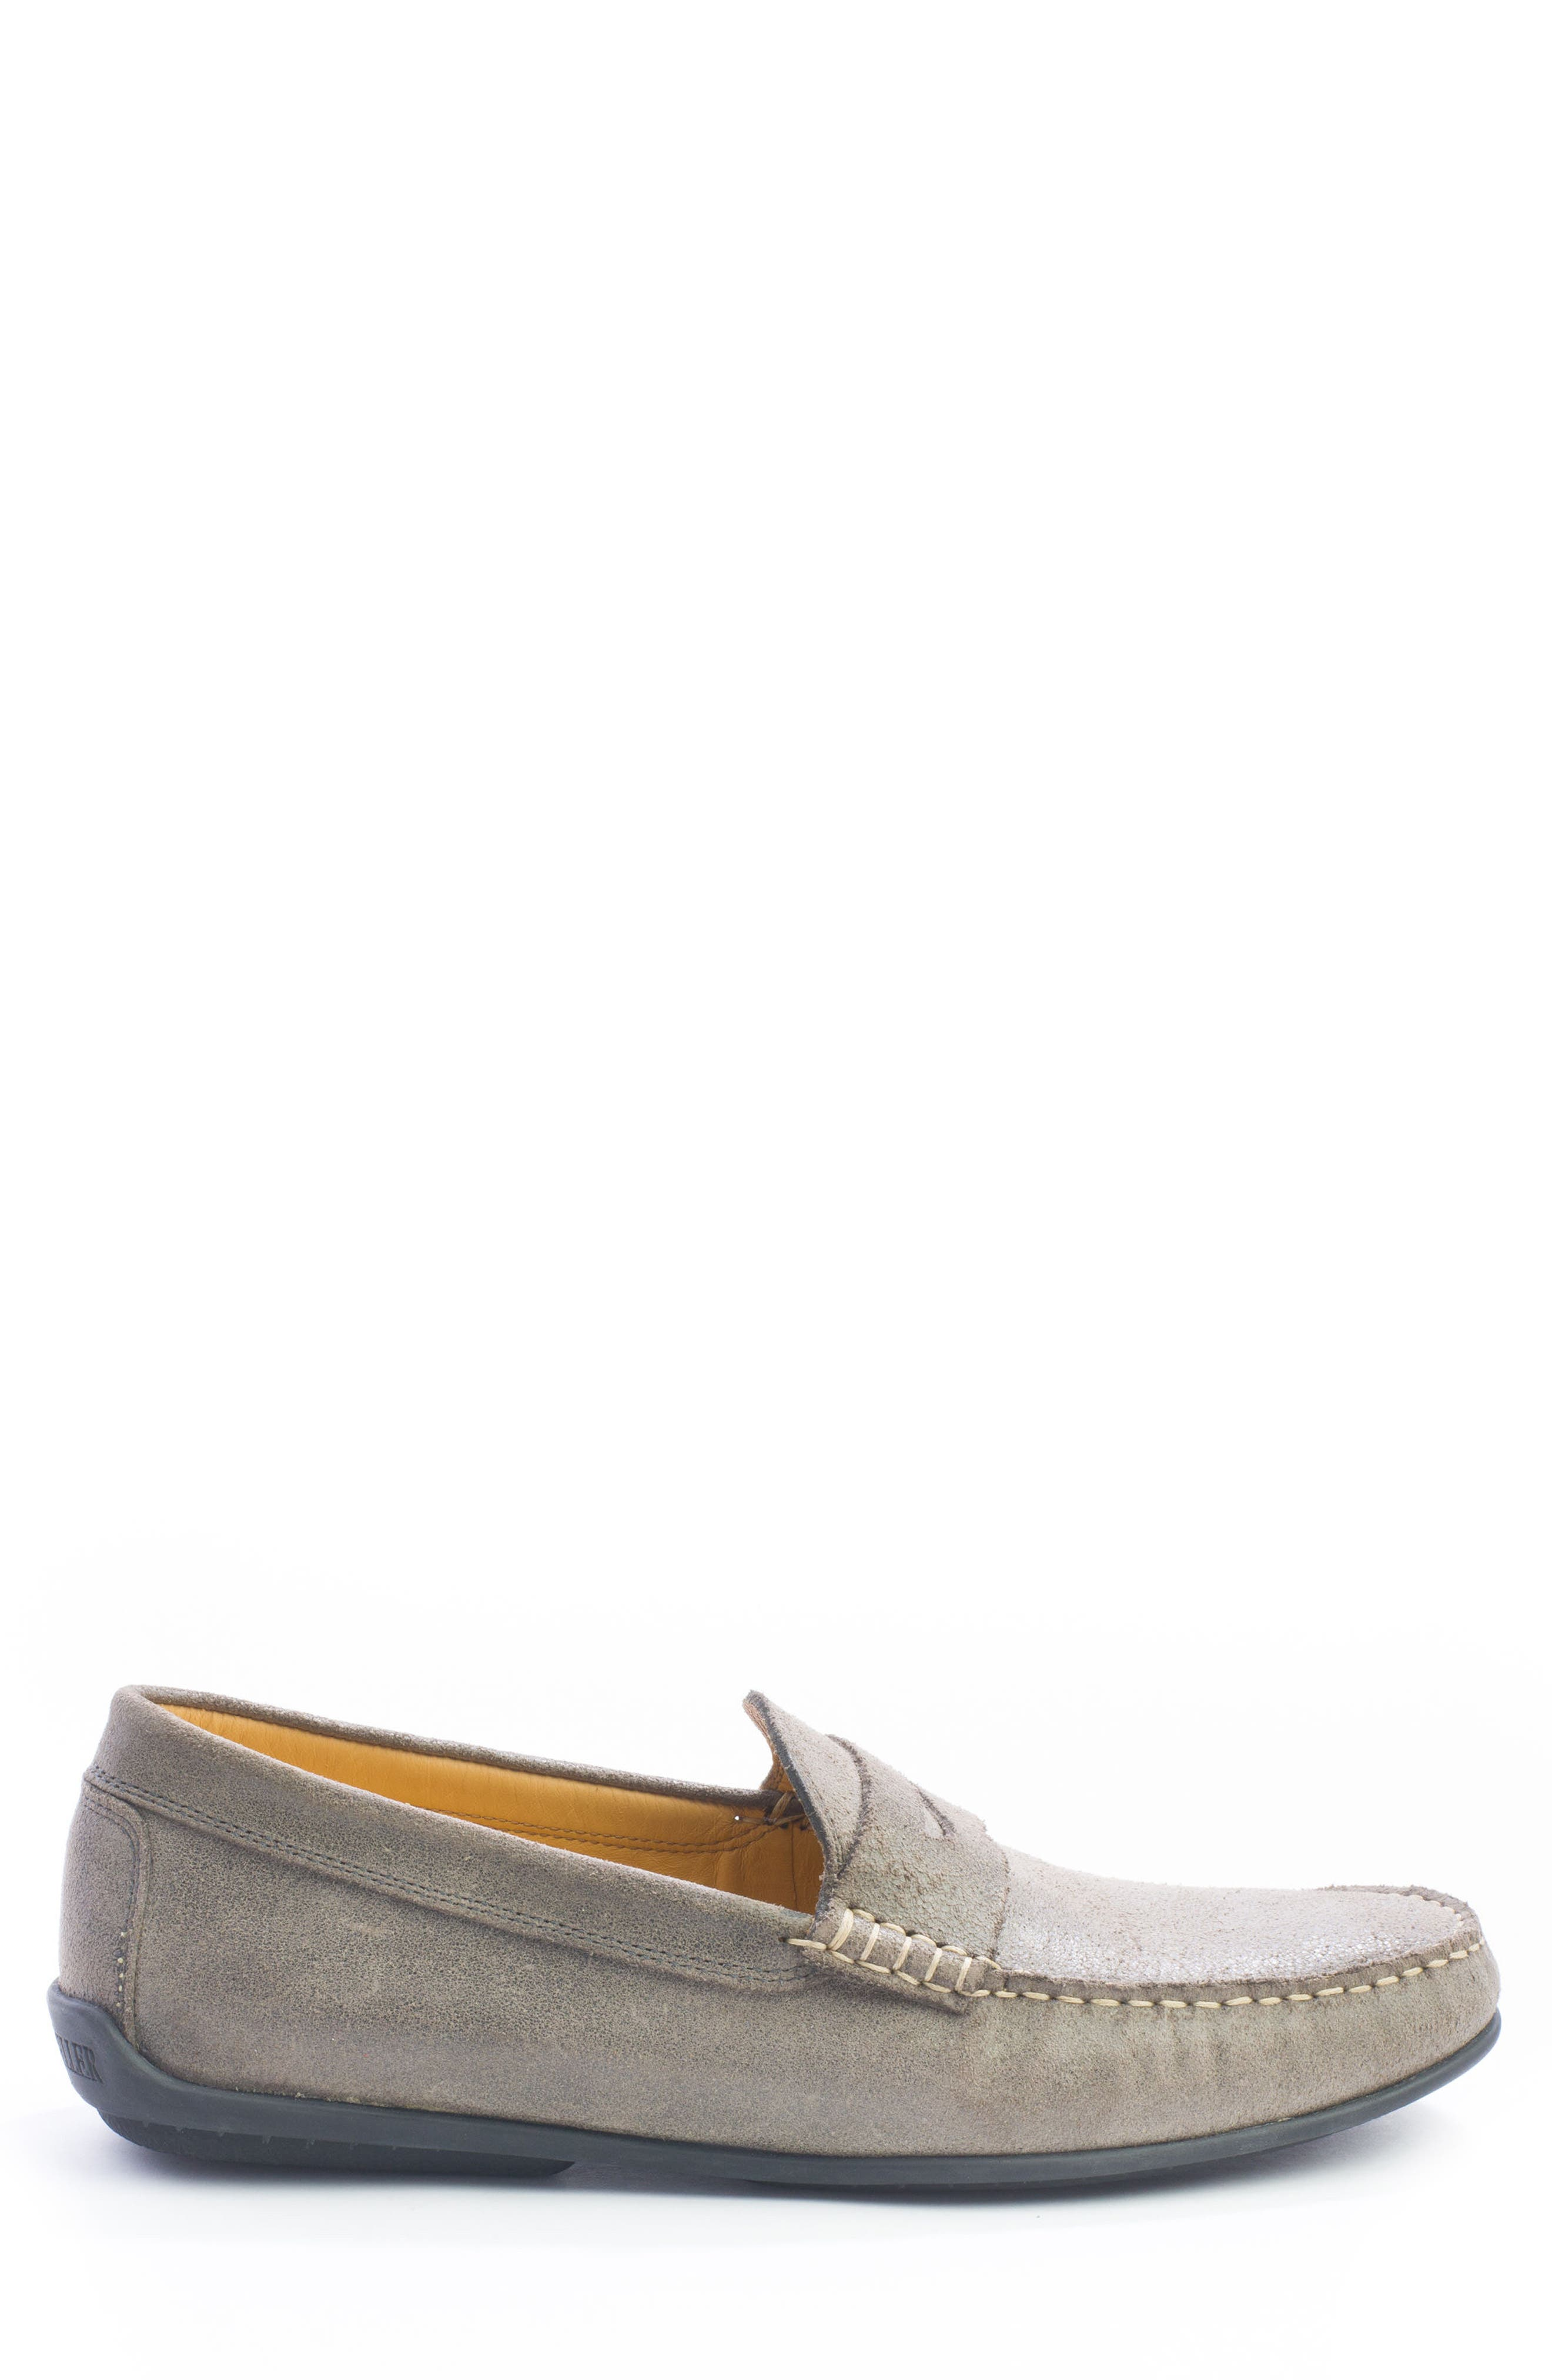 Barretts Penny Loafer,                             Alternate thumbnail 3, color,                             GREY